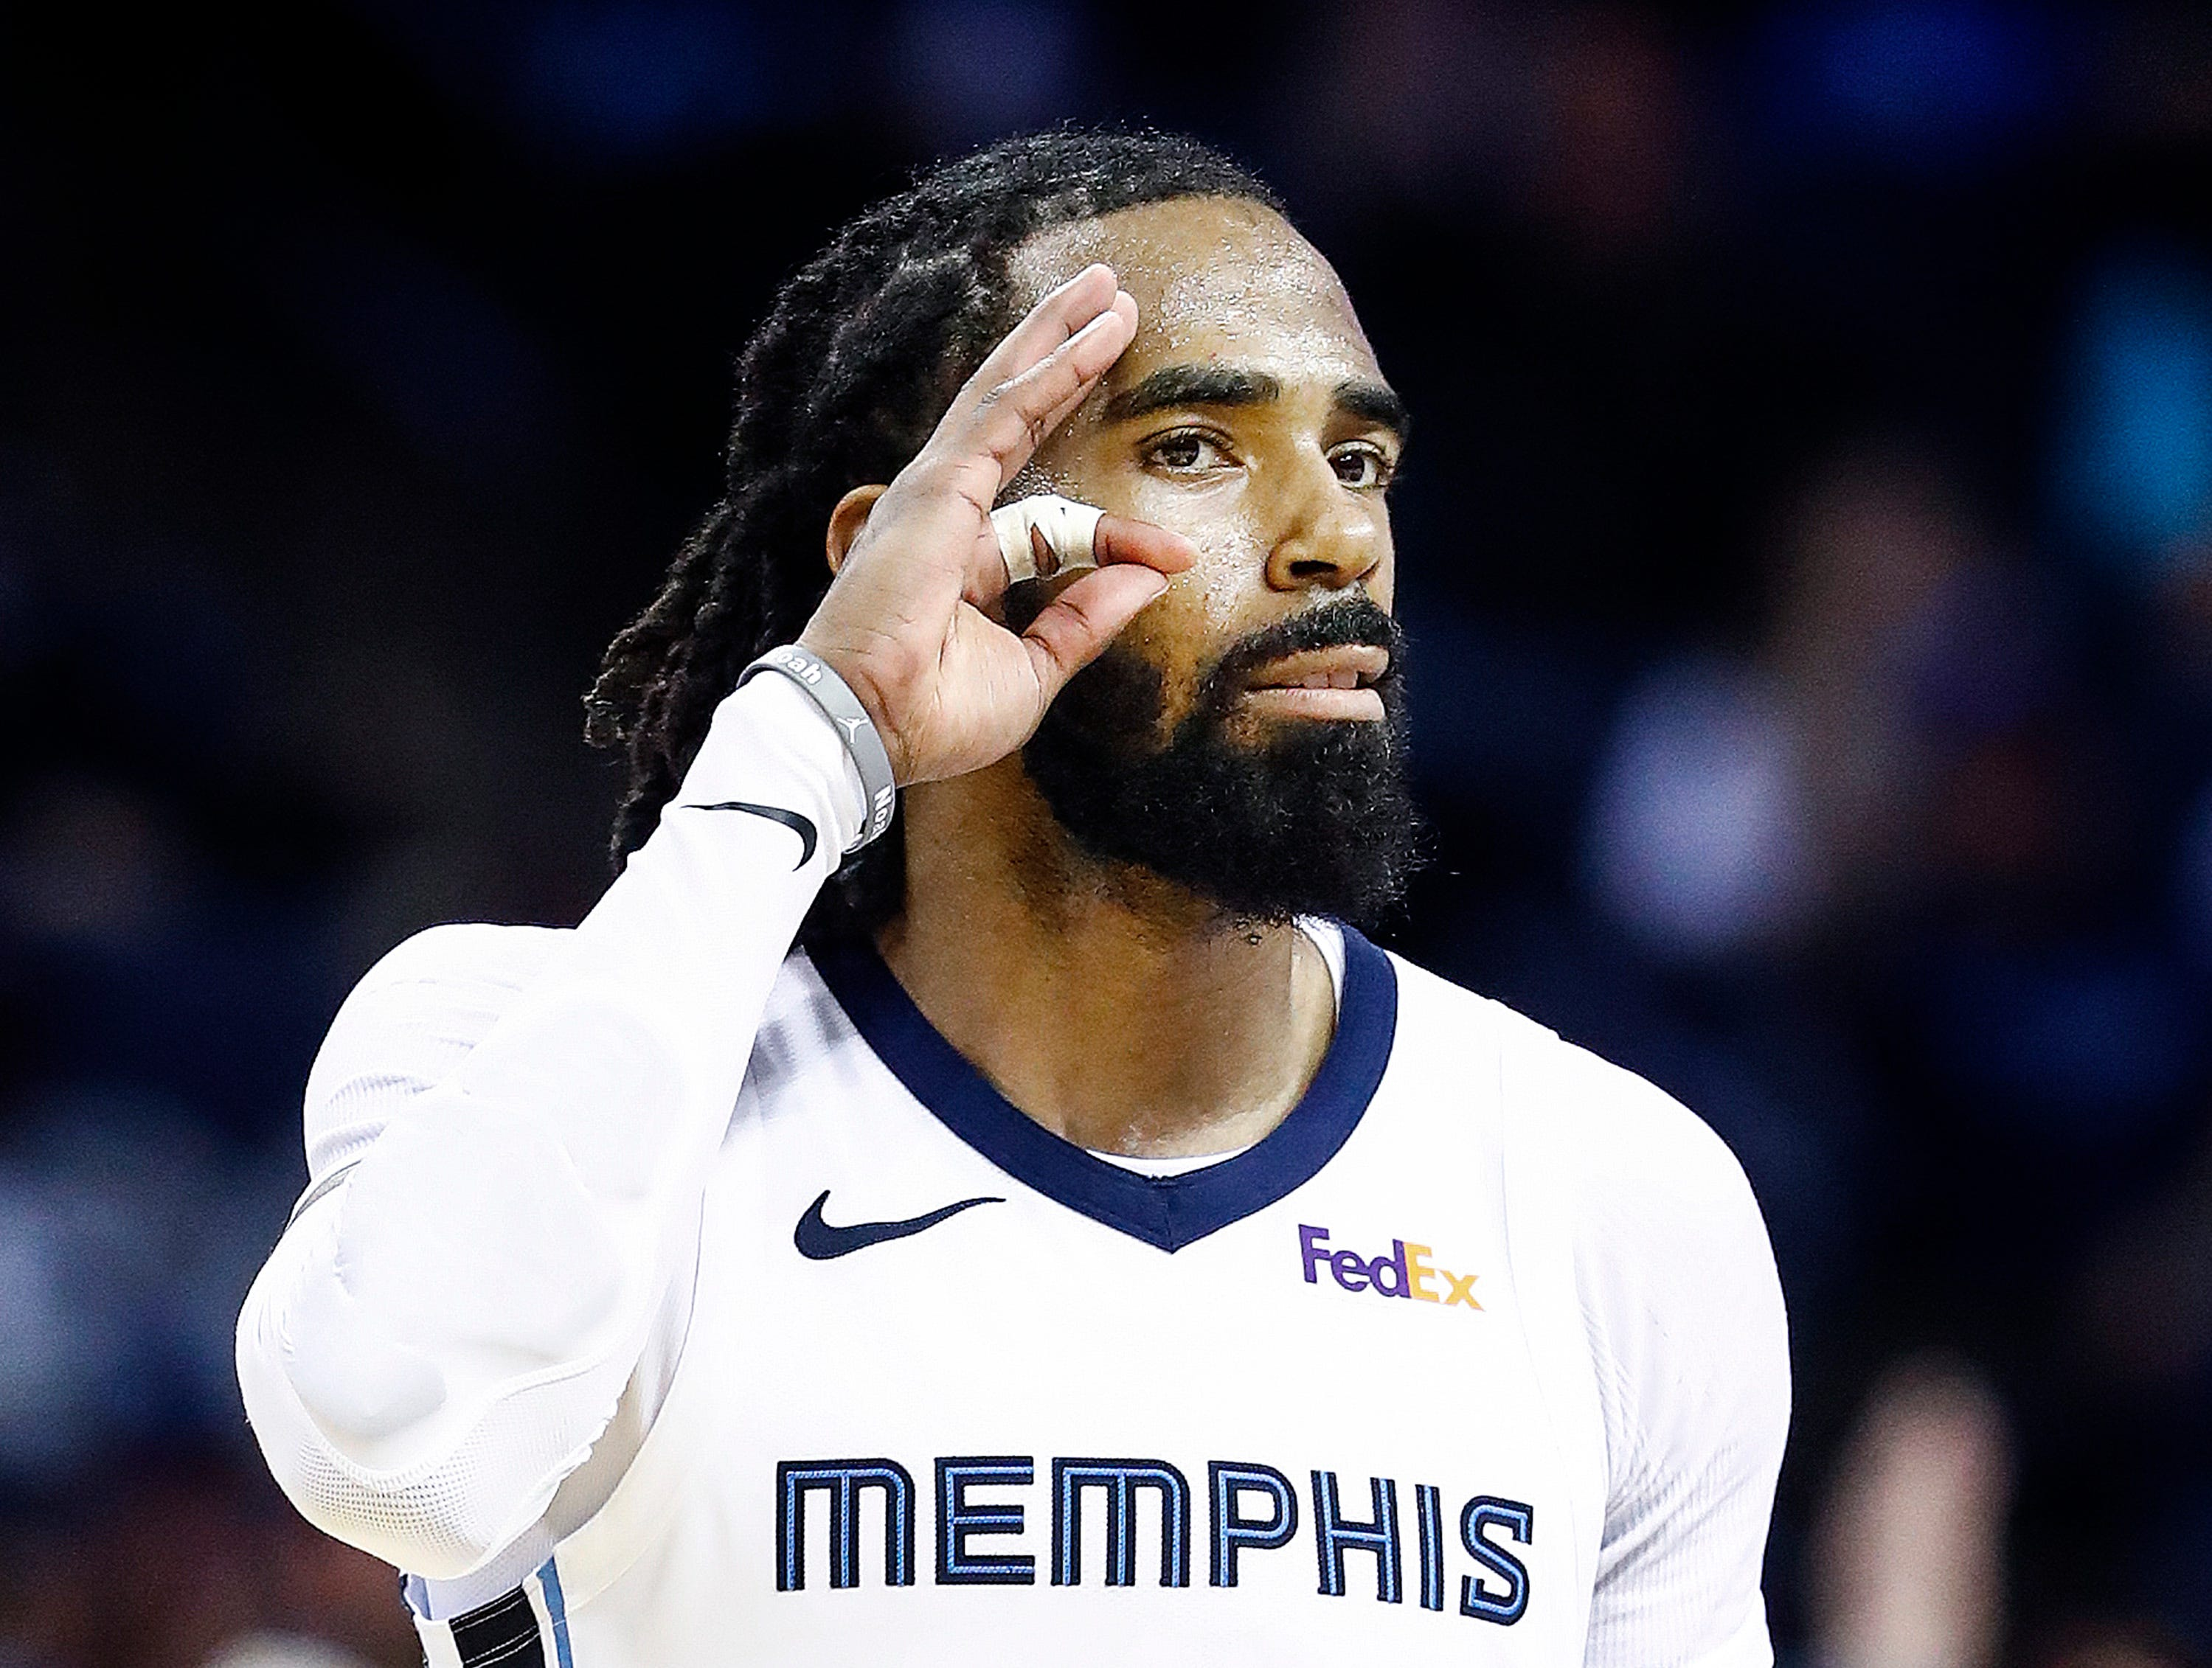 Memphis Grizzlies guard Mike Conley celebrates a made 3-pointer against the Minnesota Timberwolves defense during action at the FedExForum in Memphis, Tenn., Tuesday, February 5, 2019.